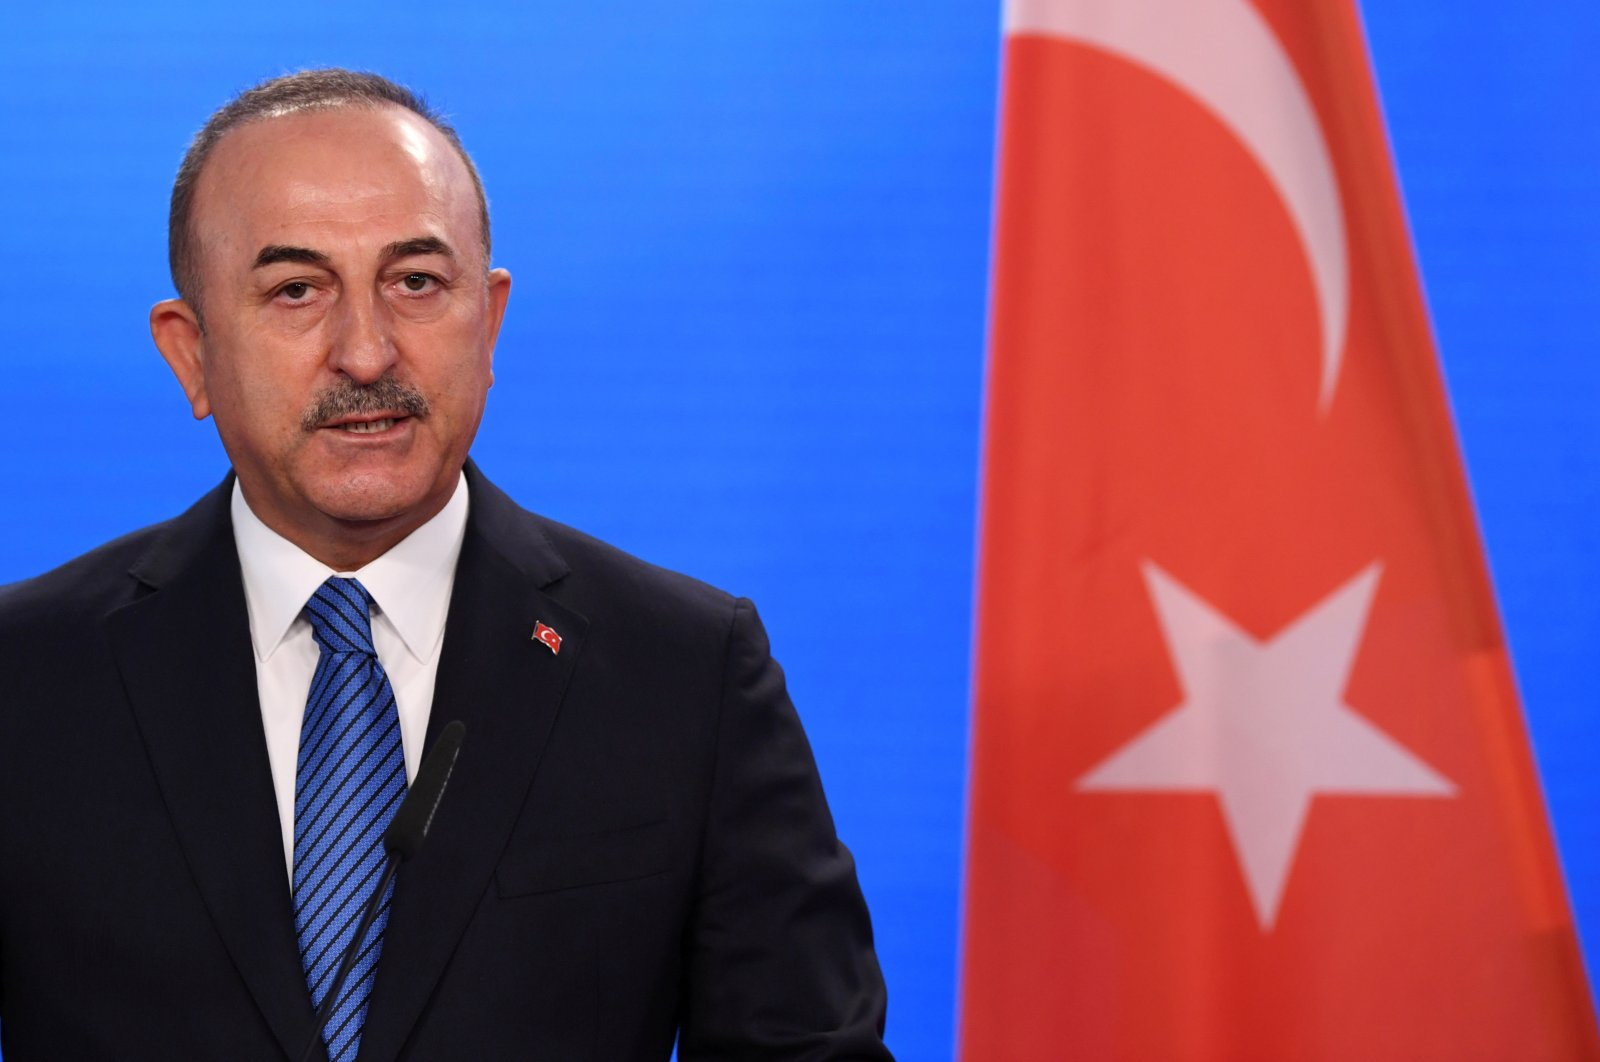 Turkish Foreign Minister Mevlüt Çavuşoğlu gives a statement to the media following a meeting with German Foreign Minister Heiko Maas at the foreign ministry in Berlin, Germany May 6, 2021. (Reuters File Photo)